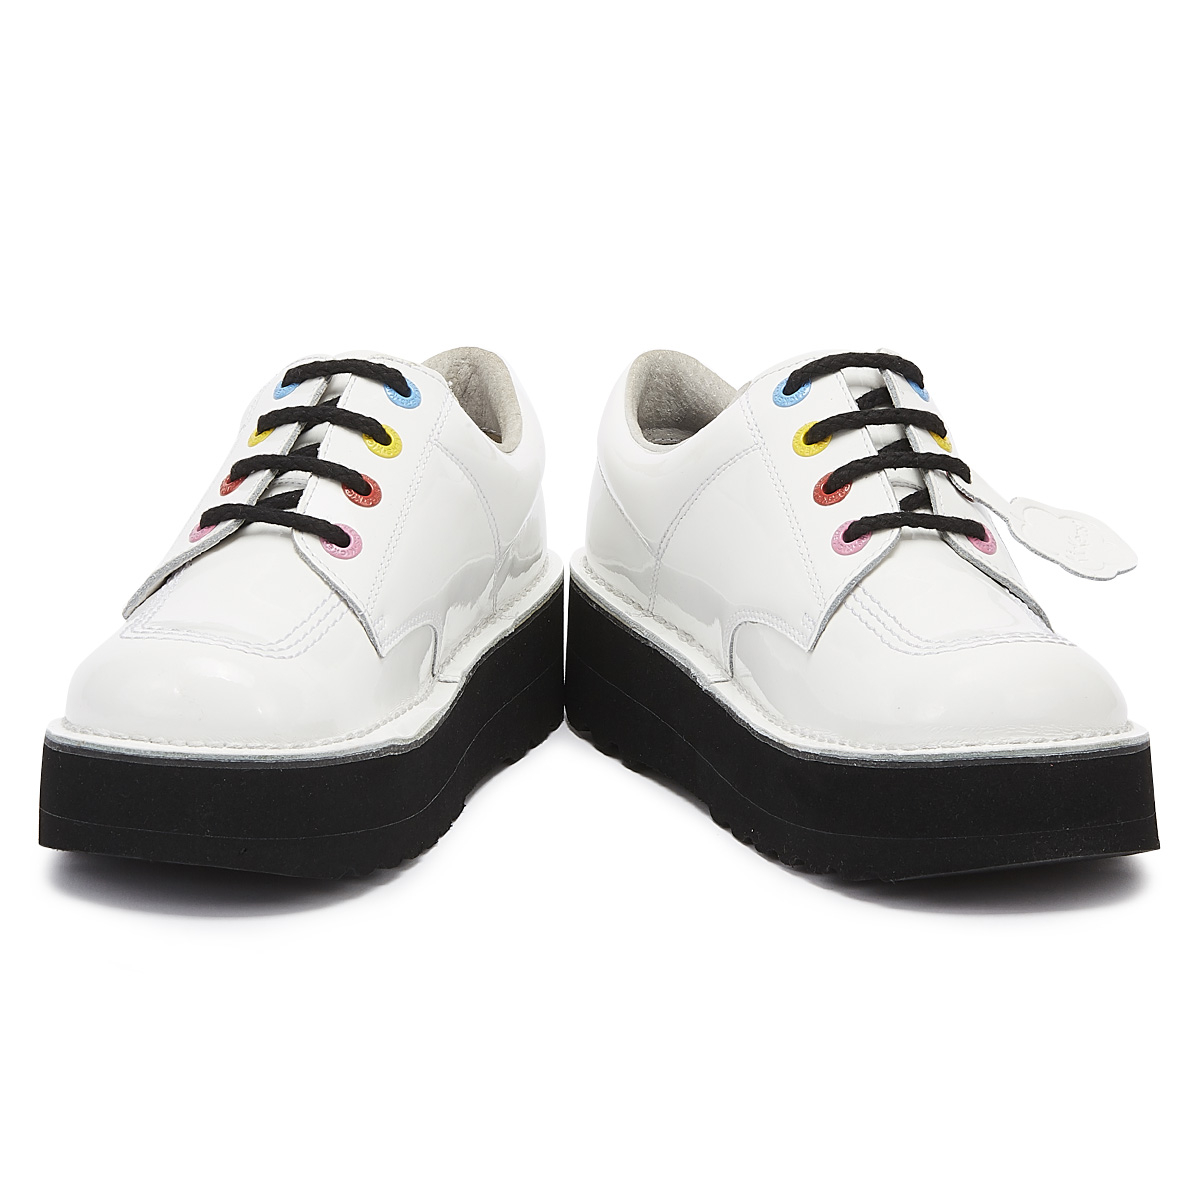 Kickers Kick Lo Stack Womens White Shoes Lace Up Leather Ladies Platforms